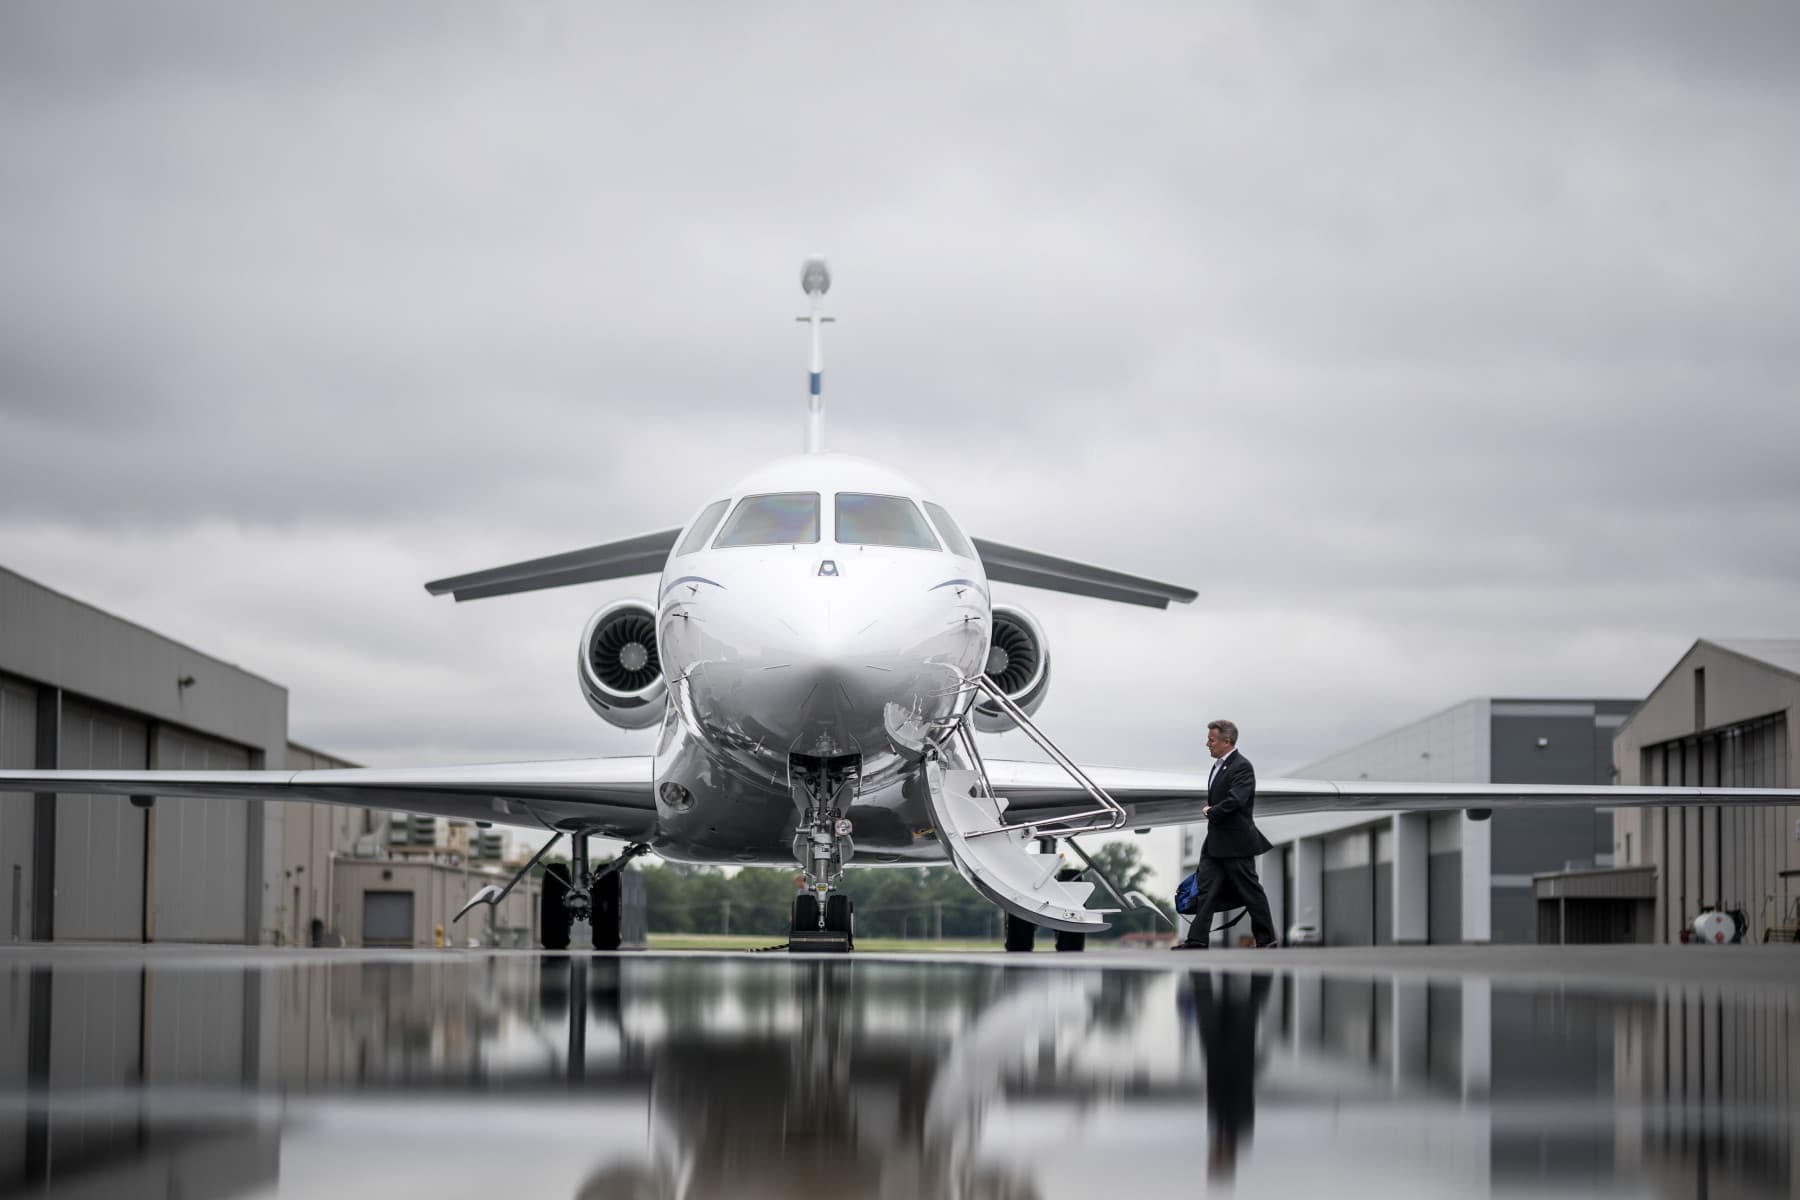 Gama Aviation, the global business aviation services company